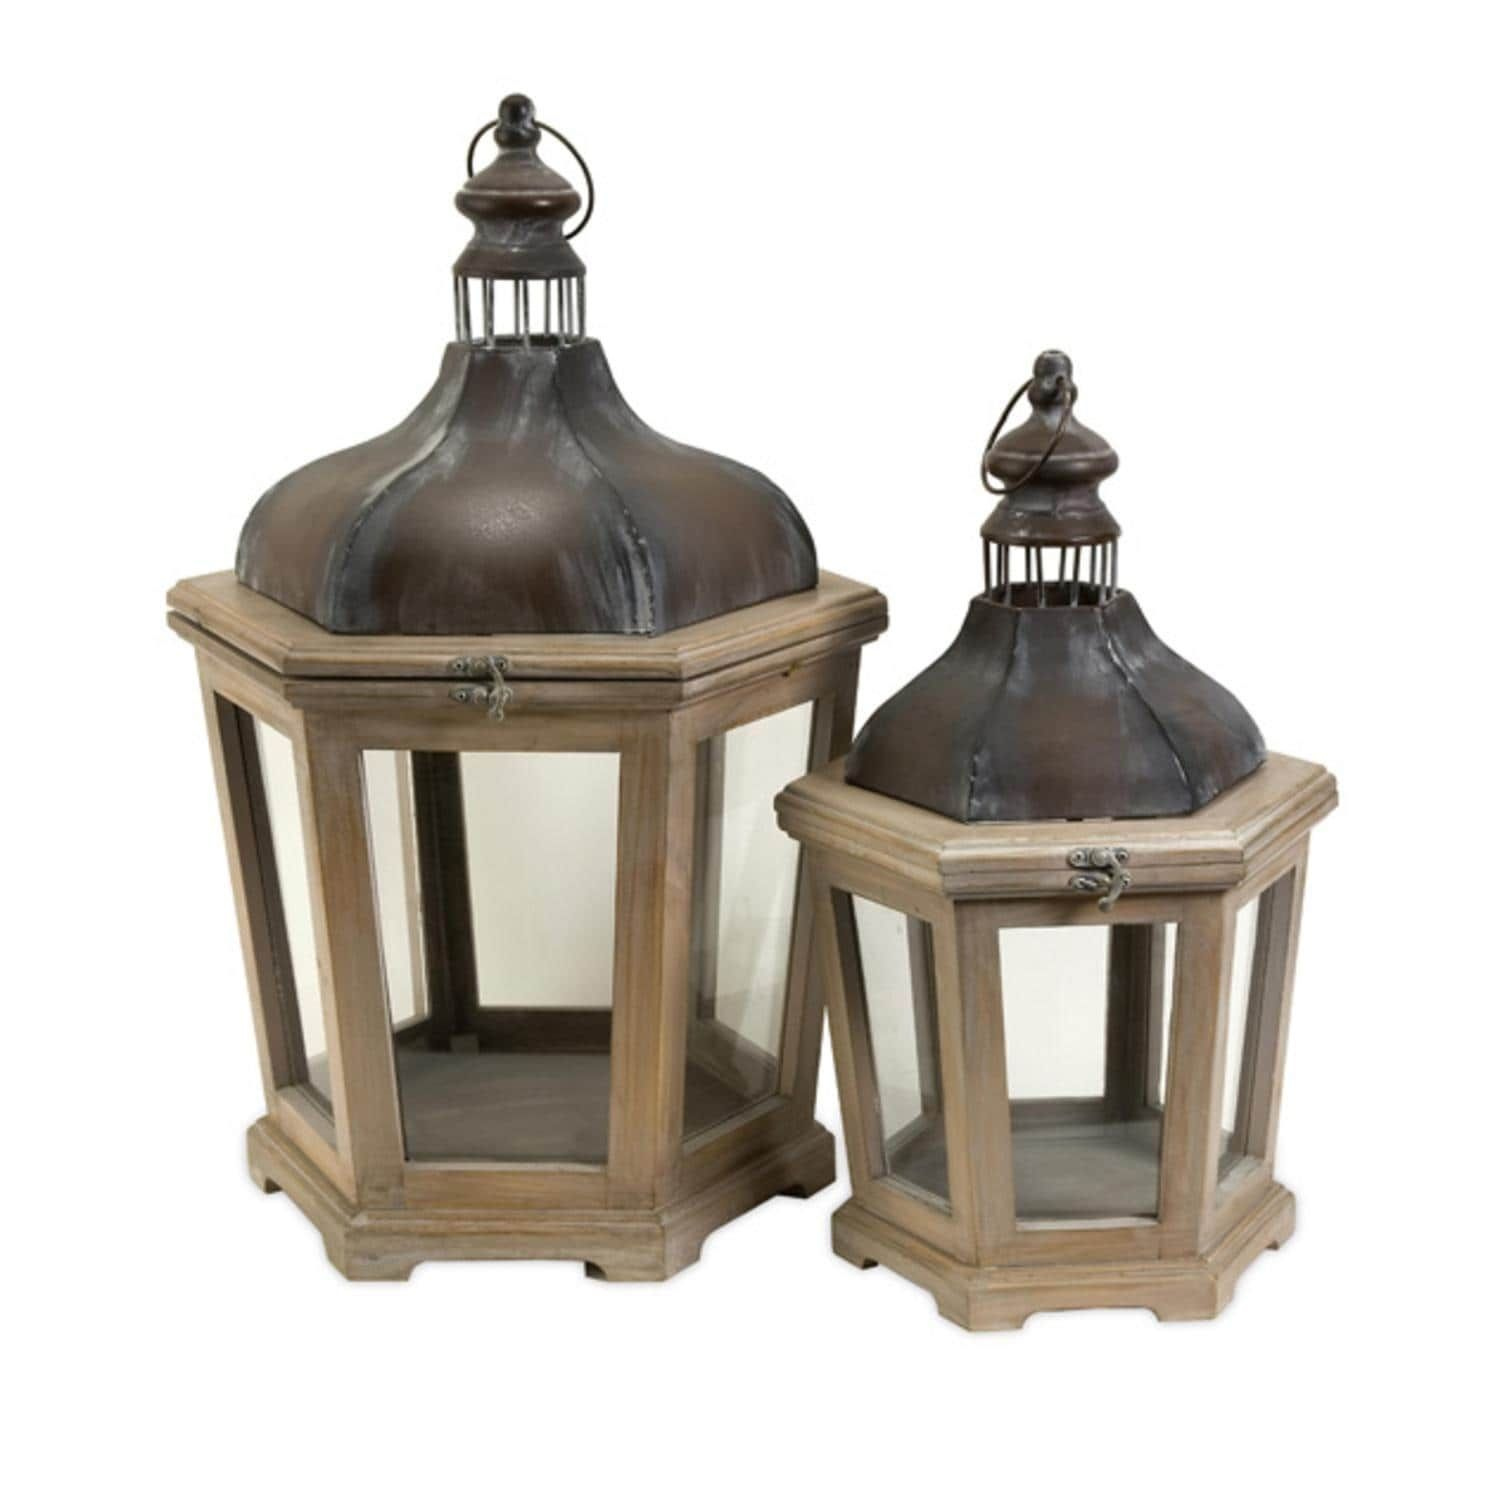 Set of whitewashed wood pillar candle lanterns with aged metal